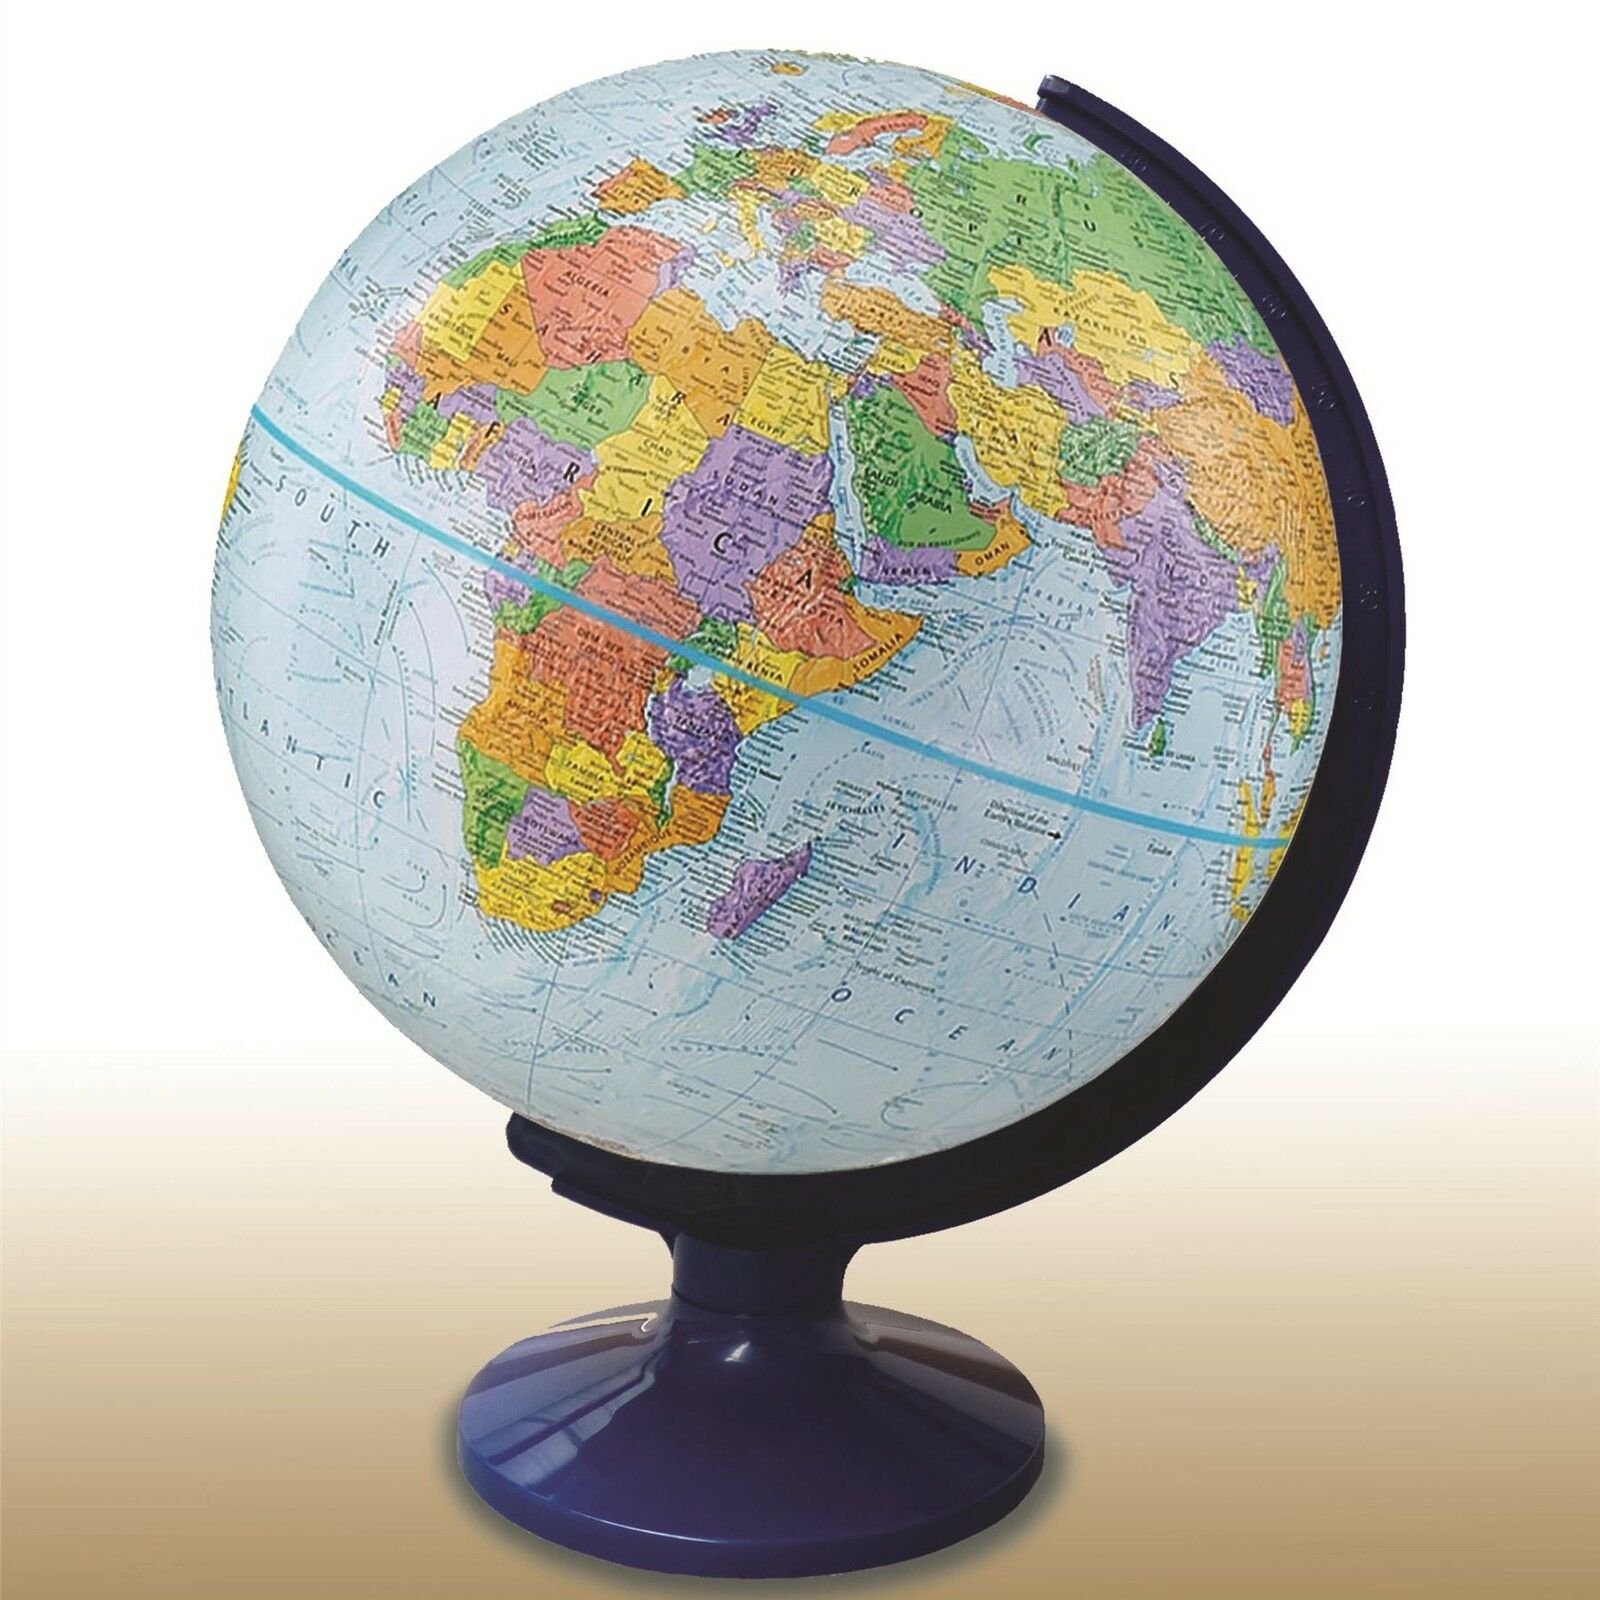 Early Learners Learners Learners Globe (Political) For Schools f4c04e